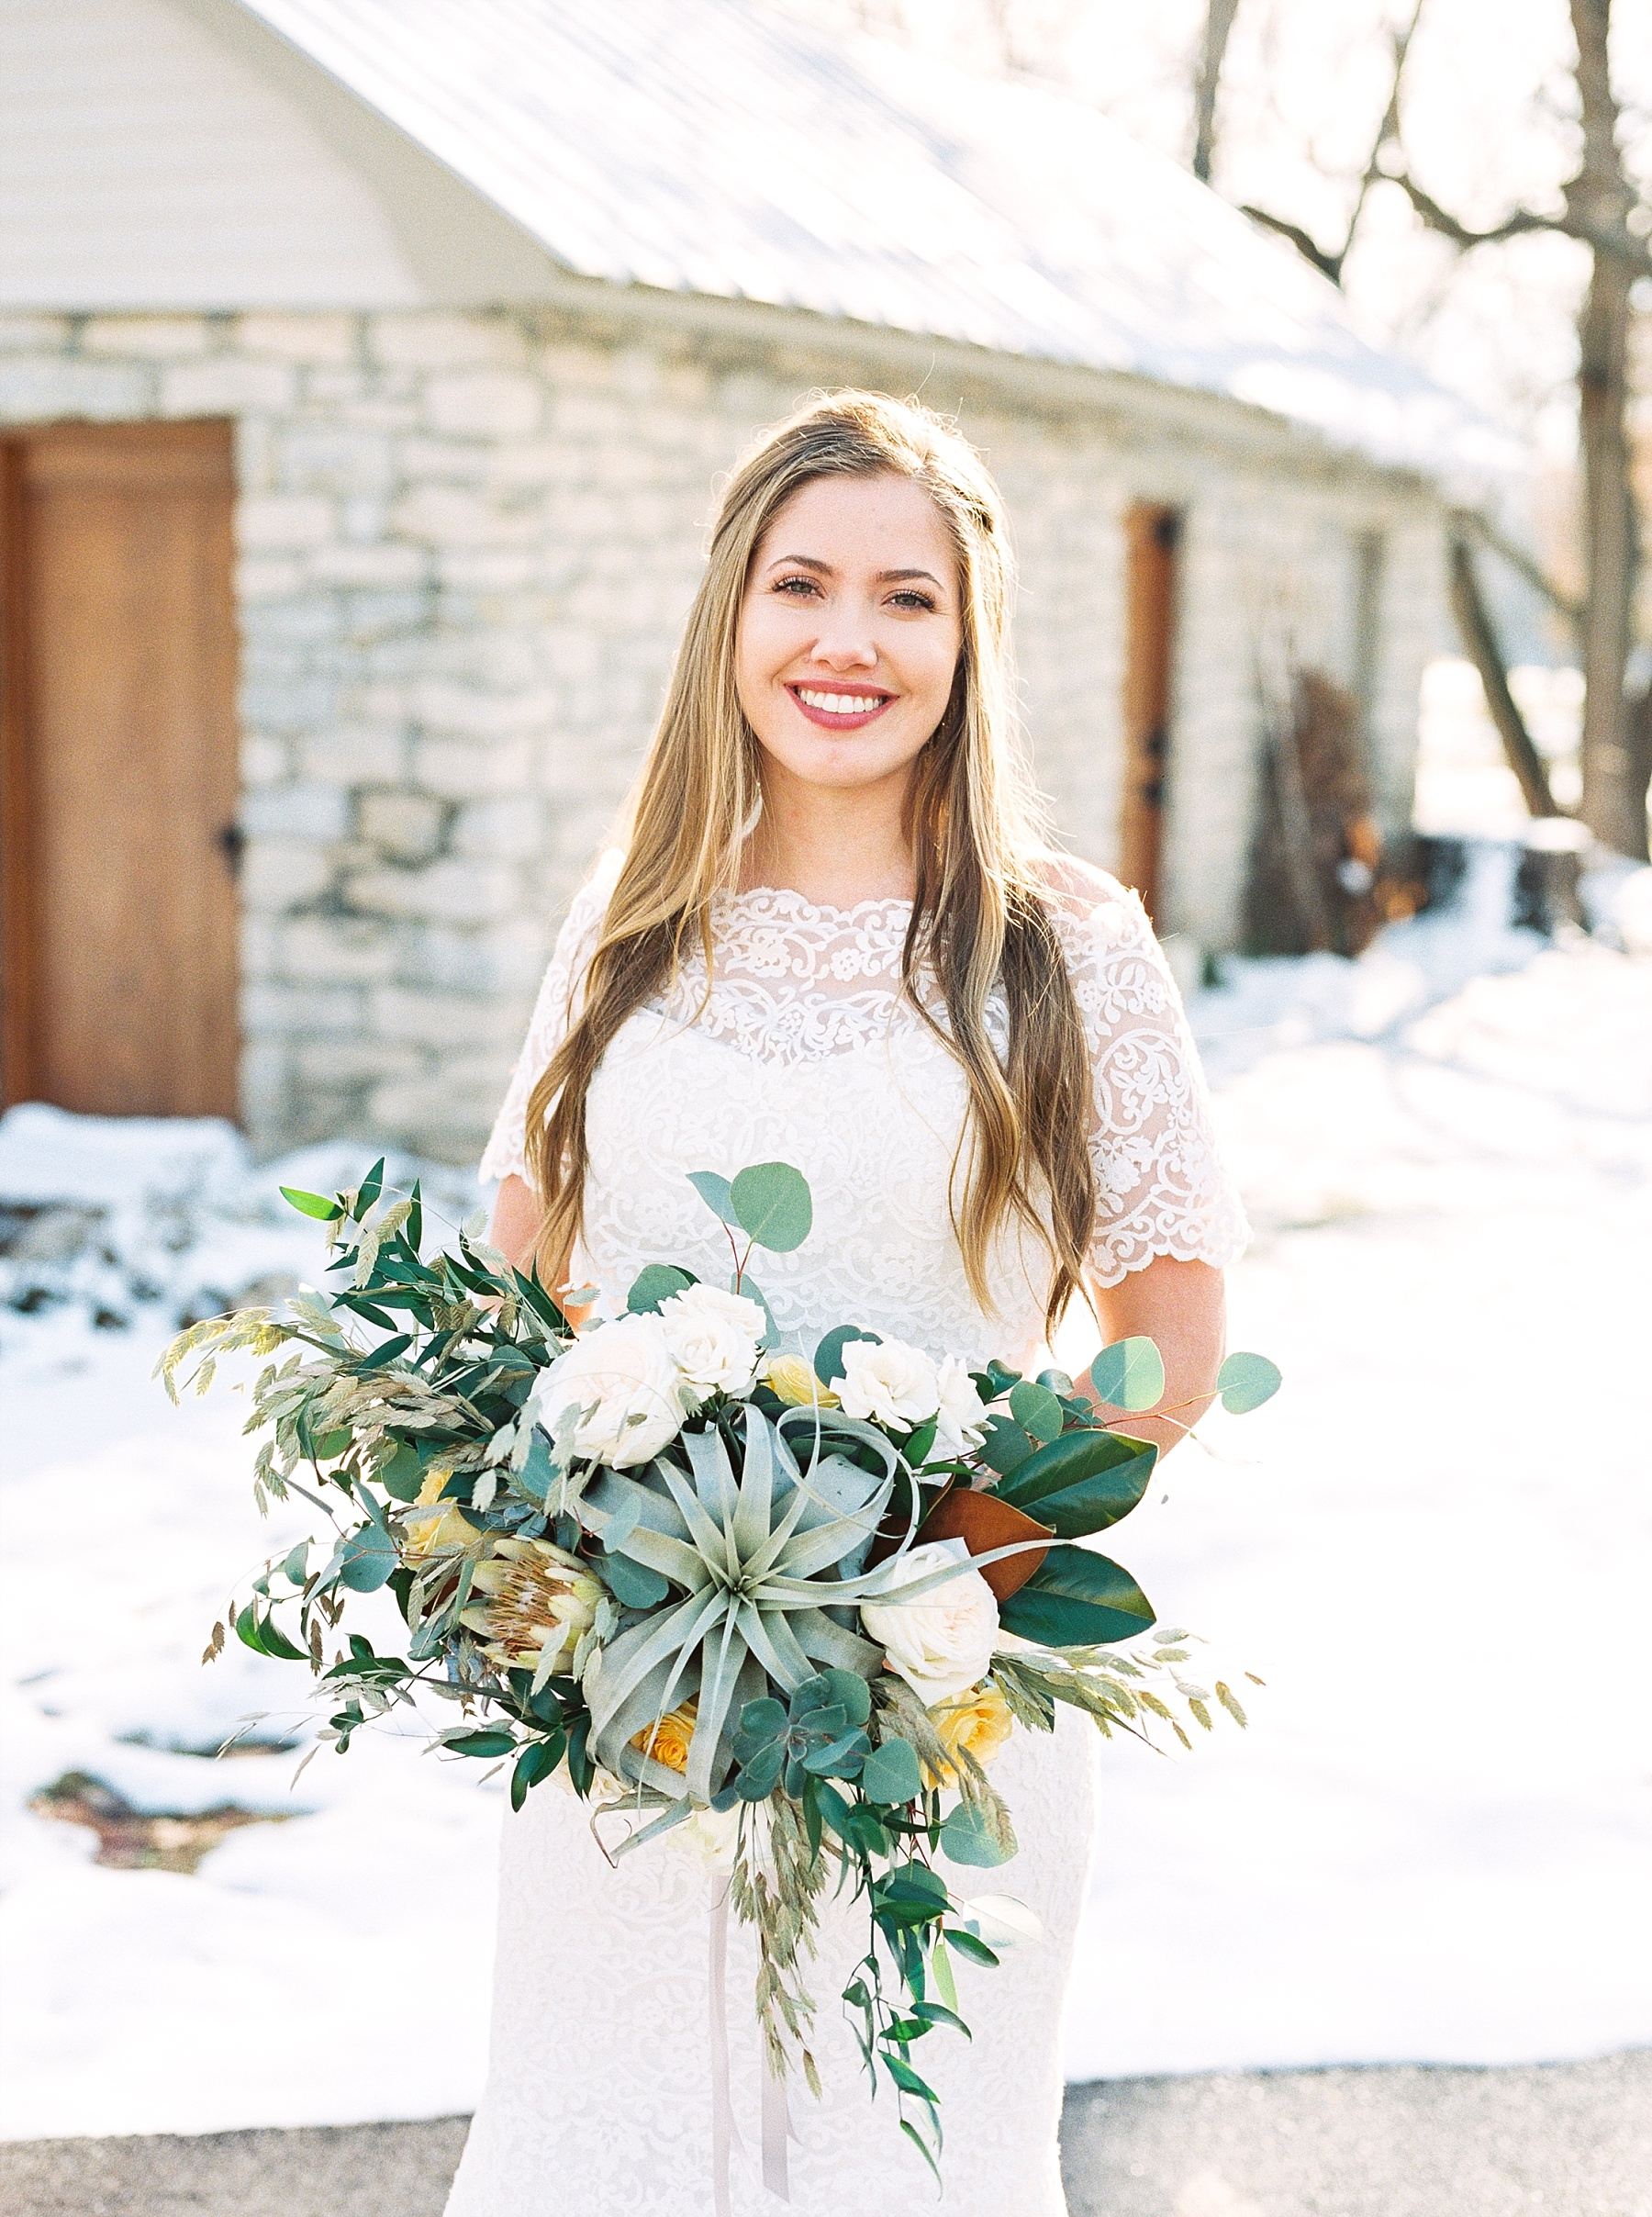 Snowy Winter Wedding at Wildcliff Events Lake With Earthy Jewel Tones and Organic Refined Style by Kelsi Kliethermes Photography Kansas City Missouri Wedding Photographer_0138.jpg